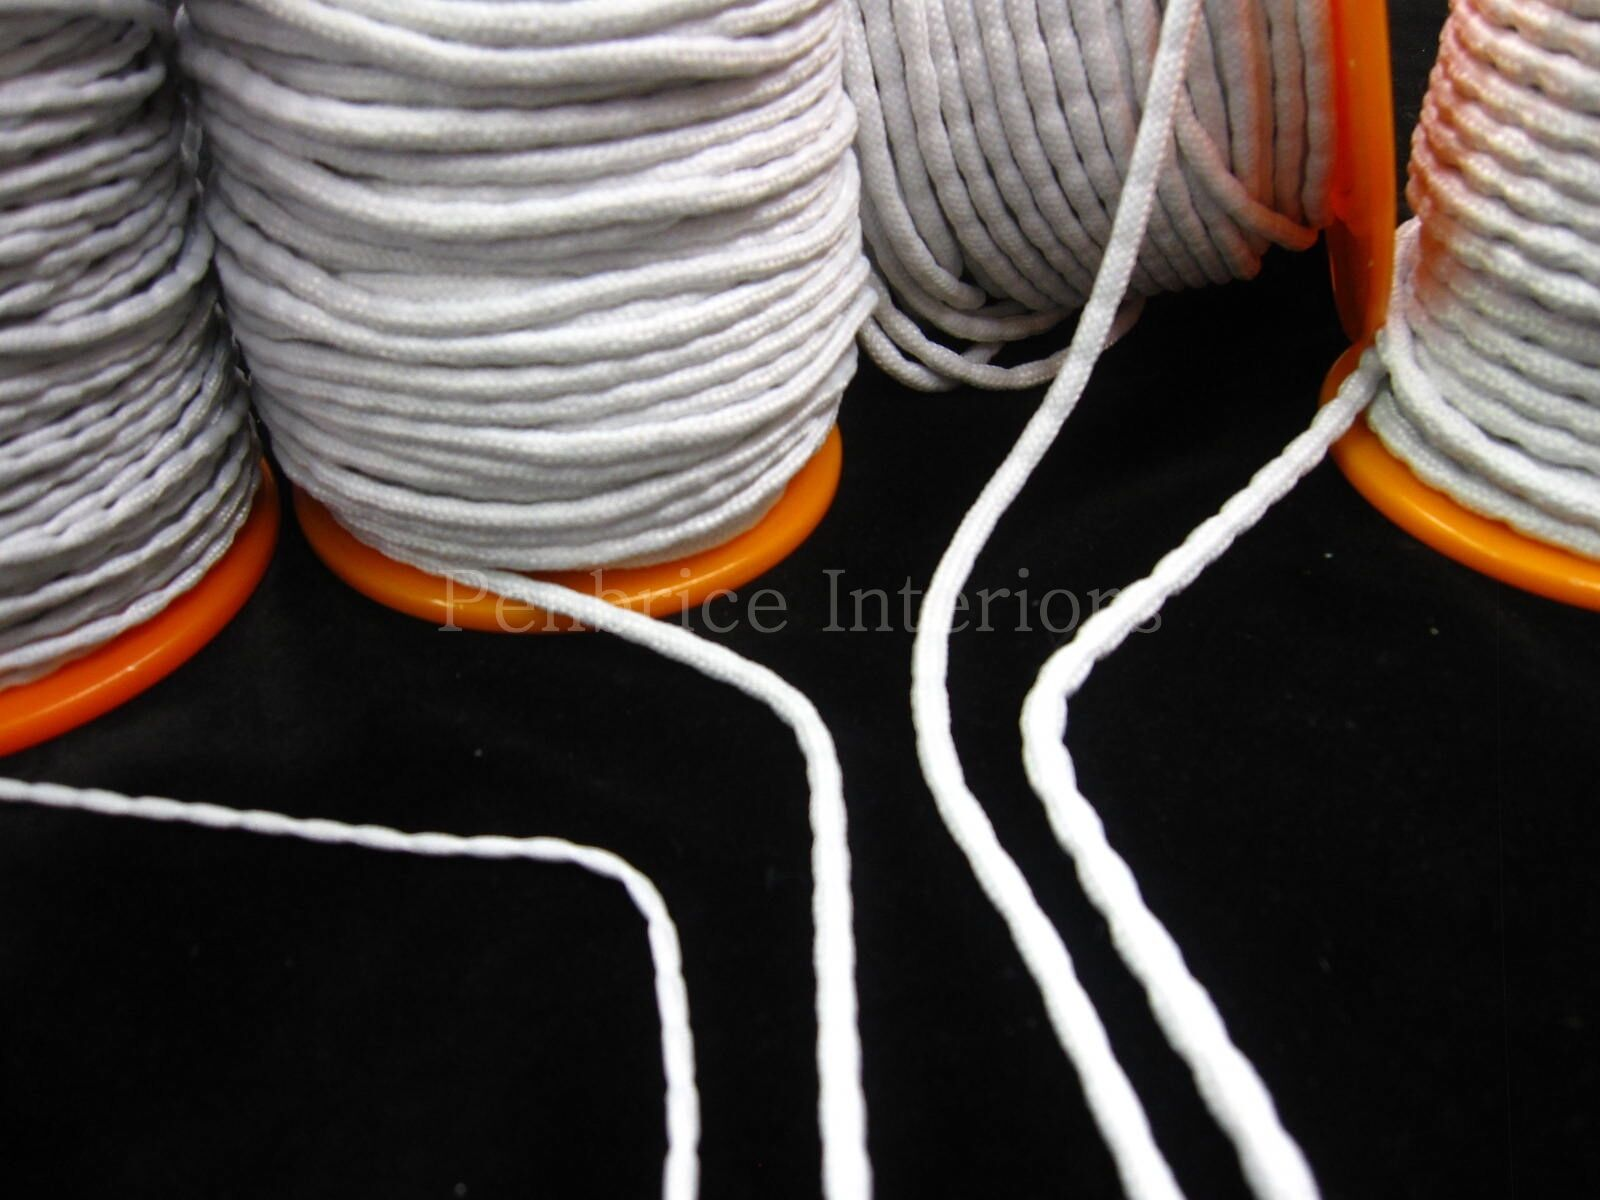 leadweighted curtain tape lead weight leadweight heavy cord rope penny weights ebay